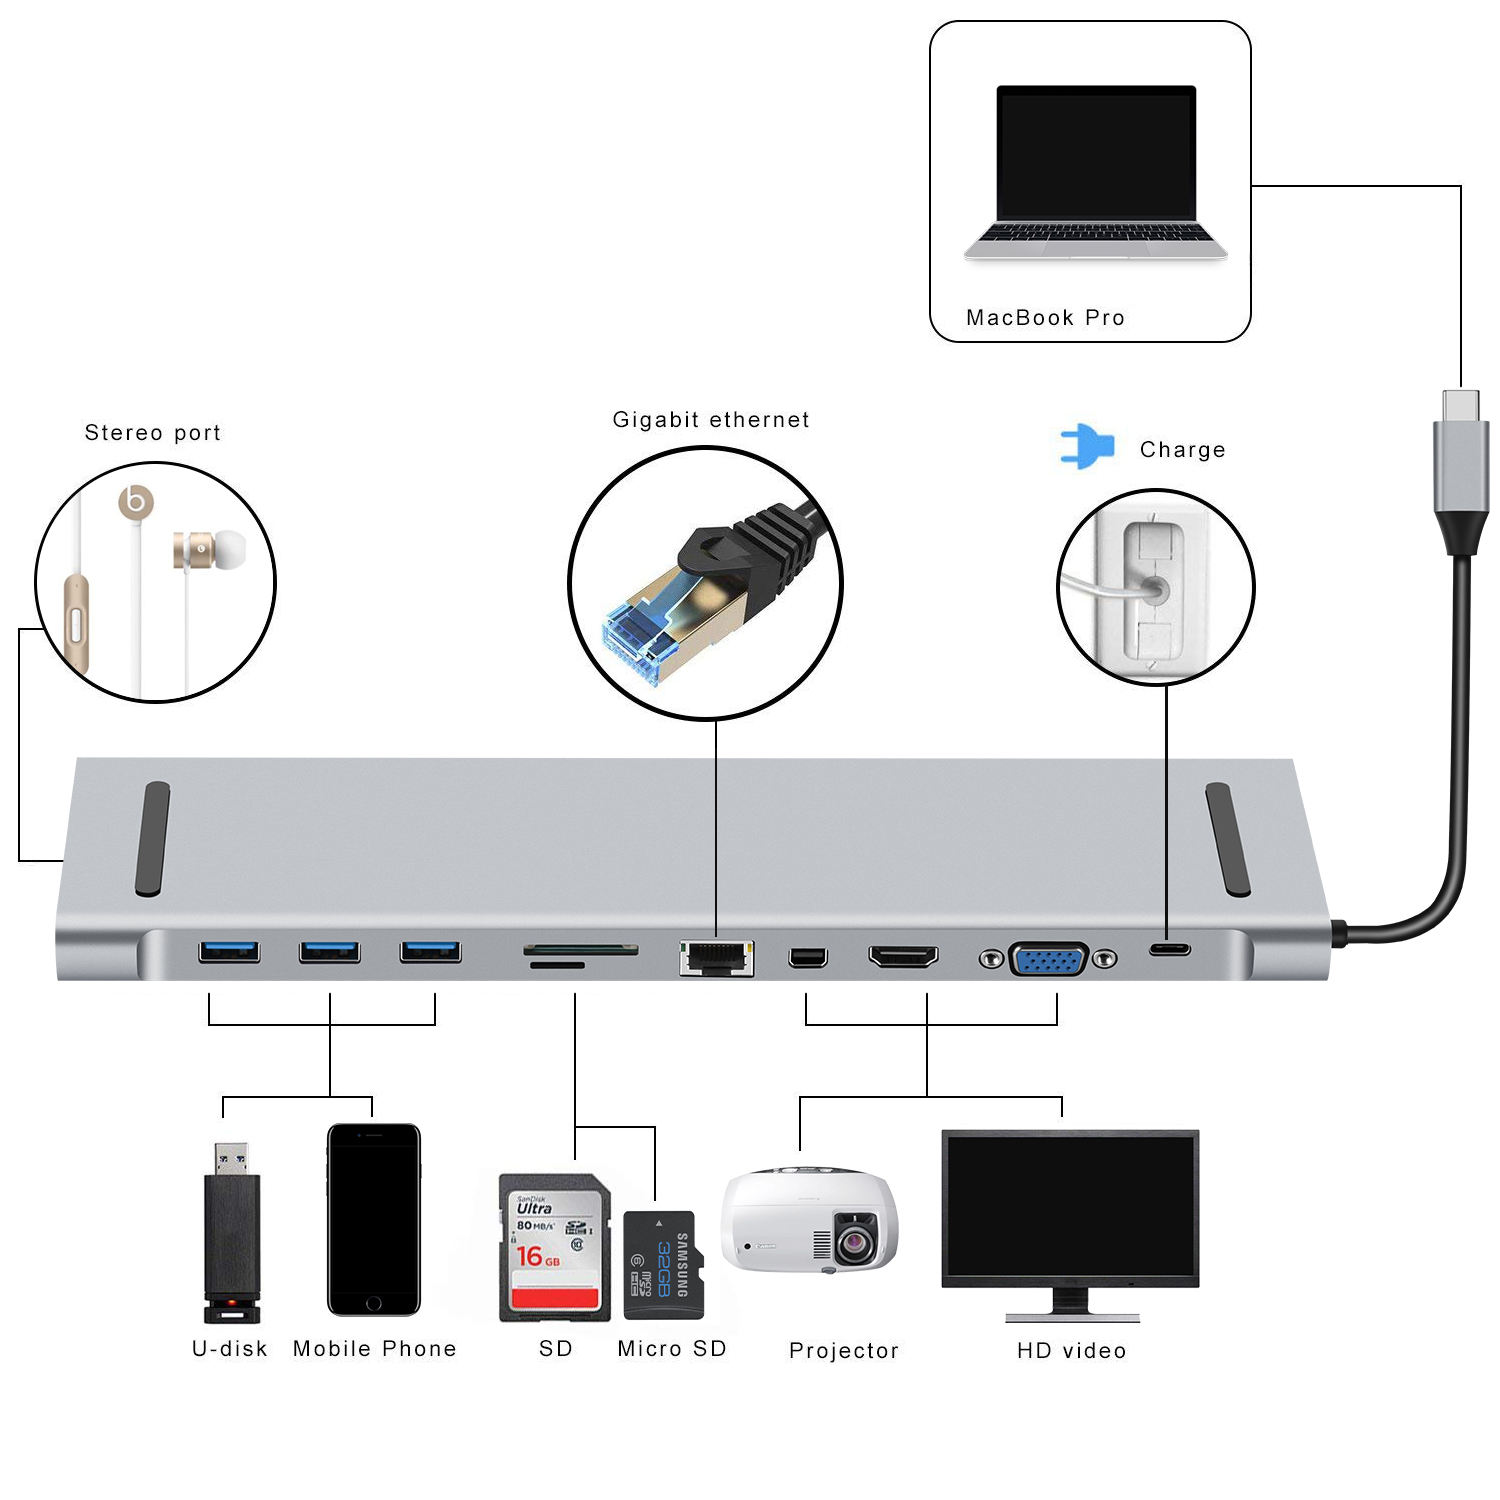 USB C 11-in-1 USB C Docking Station Dual Video-Uitbreiden Uw PC s Mogelijkheden Multifunctionele interfaces